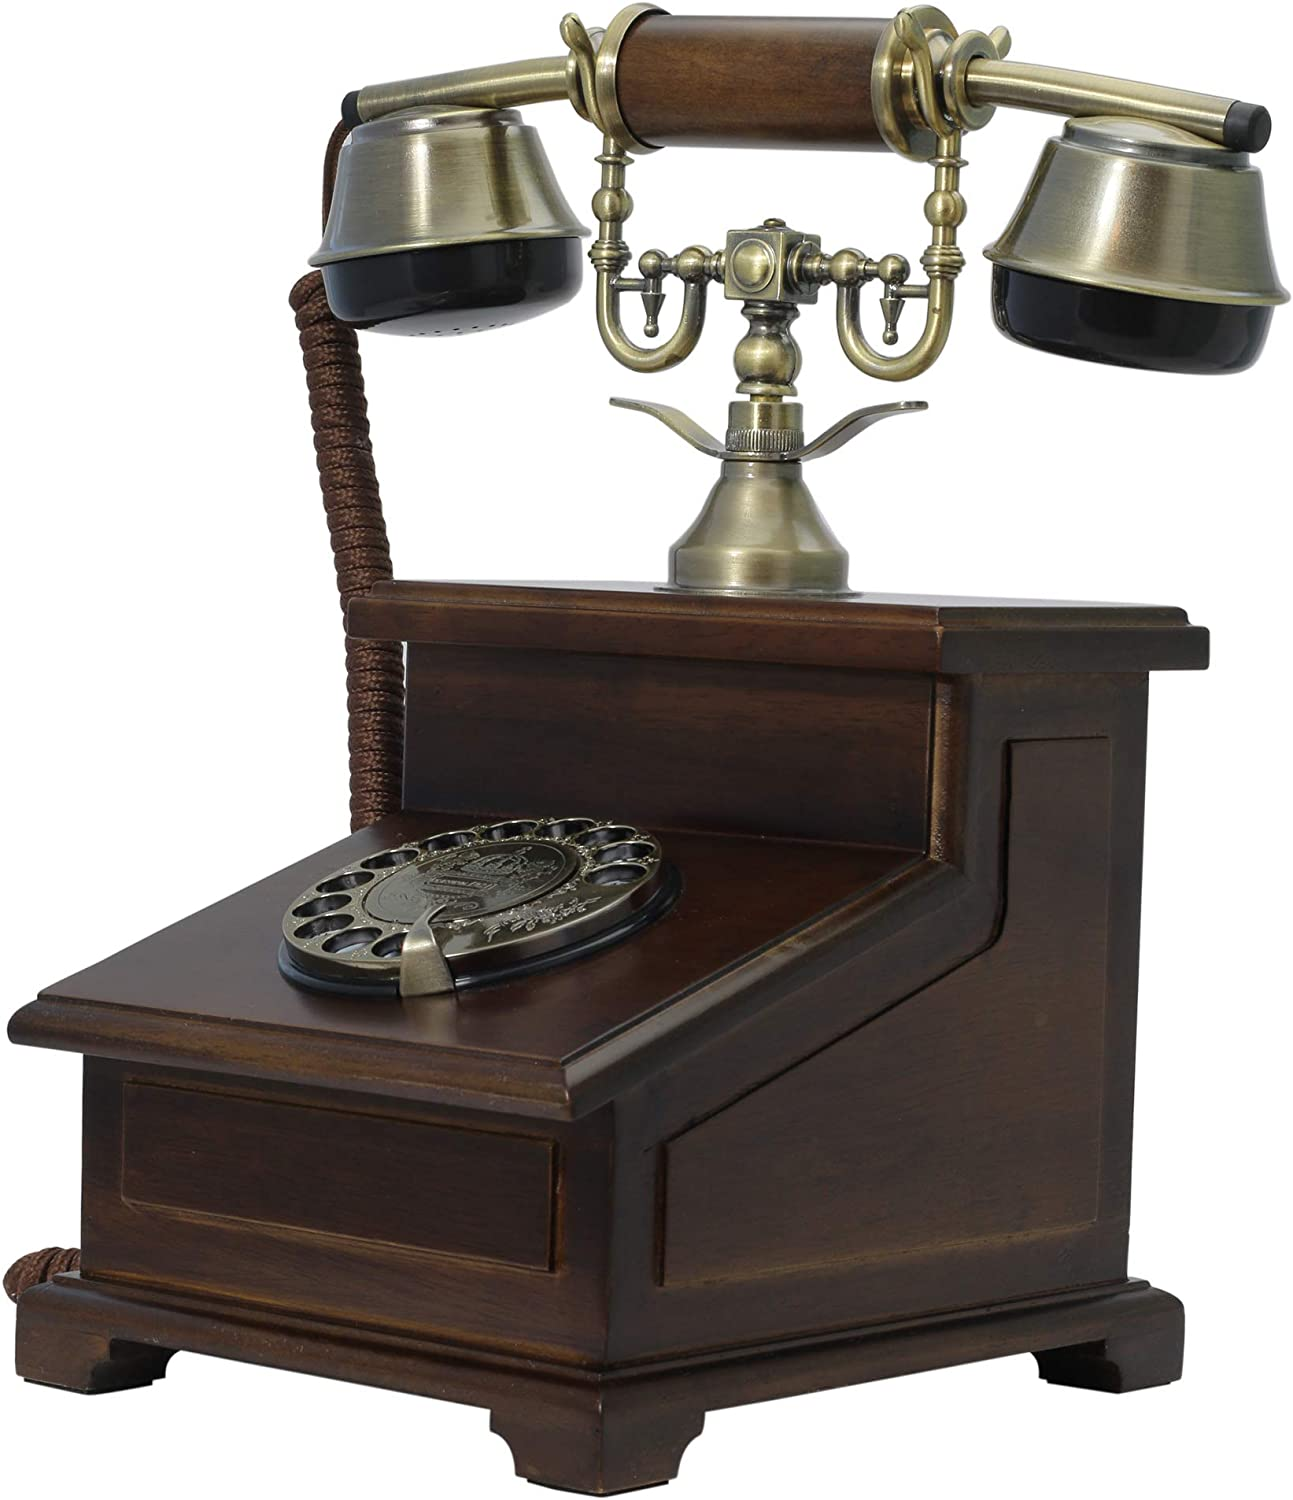 Opis 1921 Cable Model E: The Massive Antique Style Desktop Telephone Made from Wood and Metal